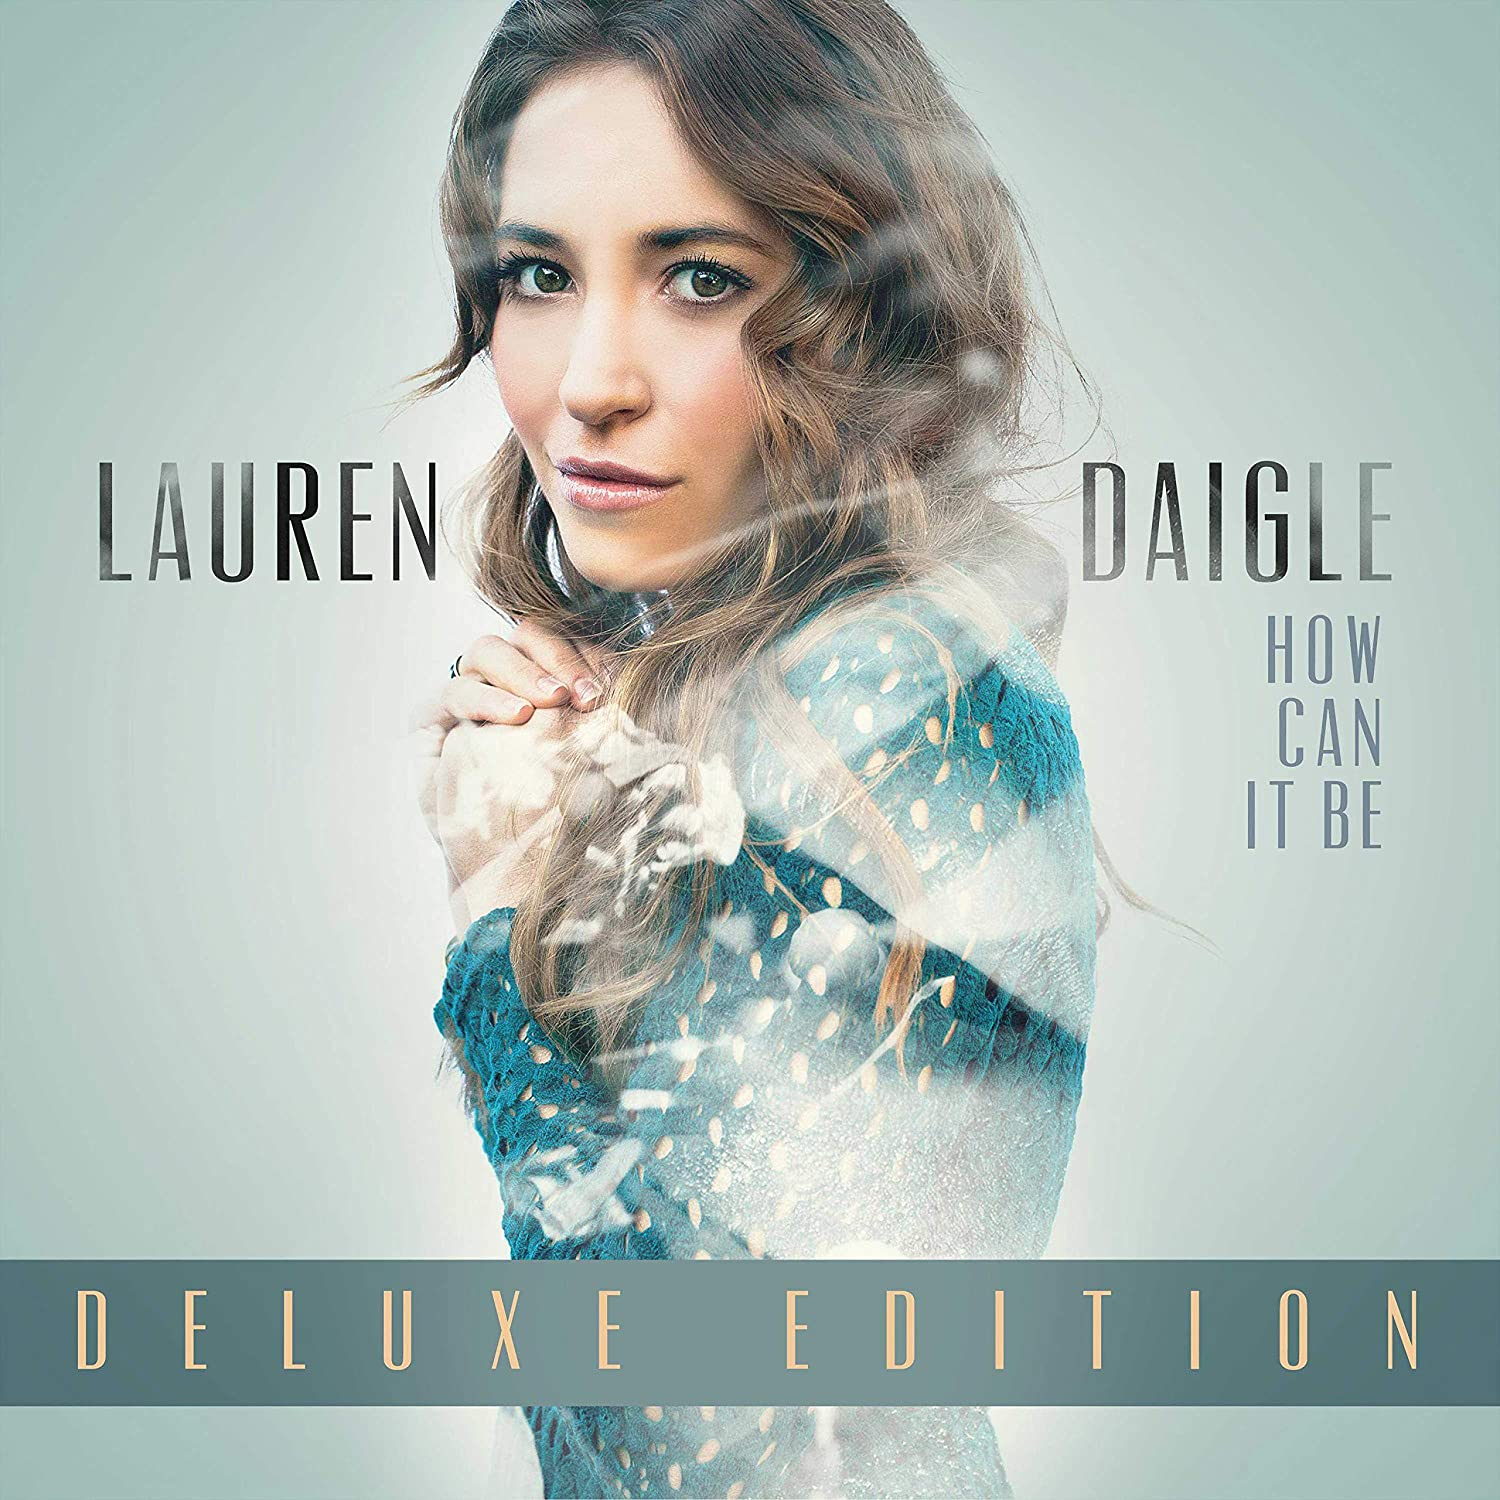 Lauren Daigle - How Can It Be [Deluxe Edition 2LP]